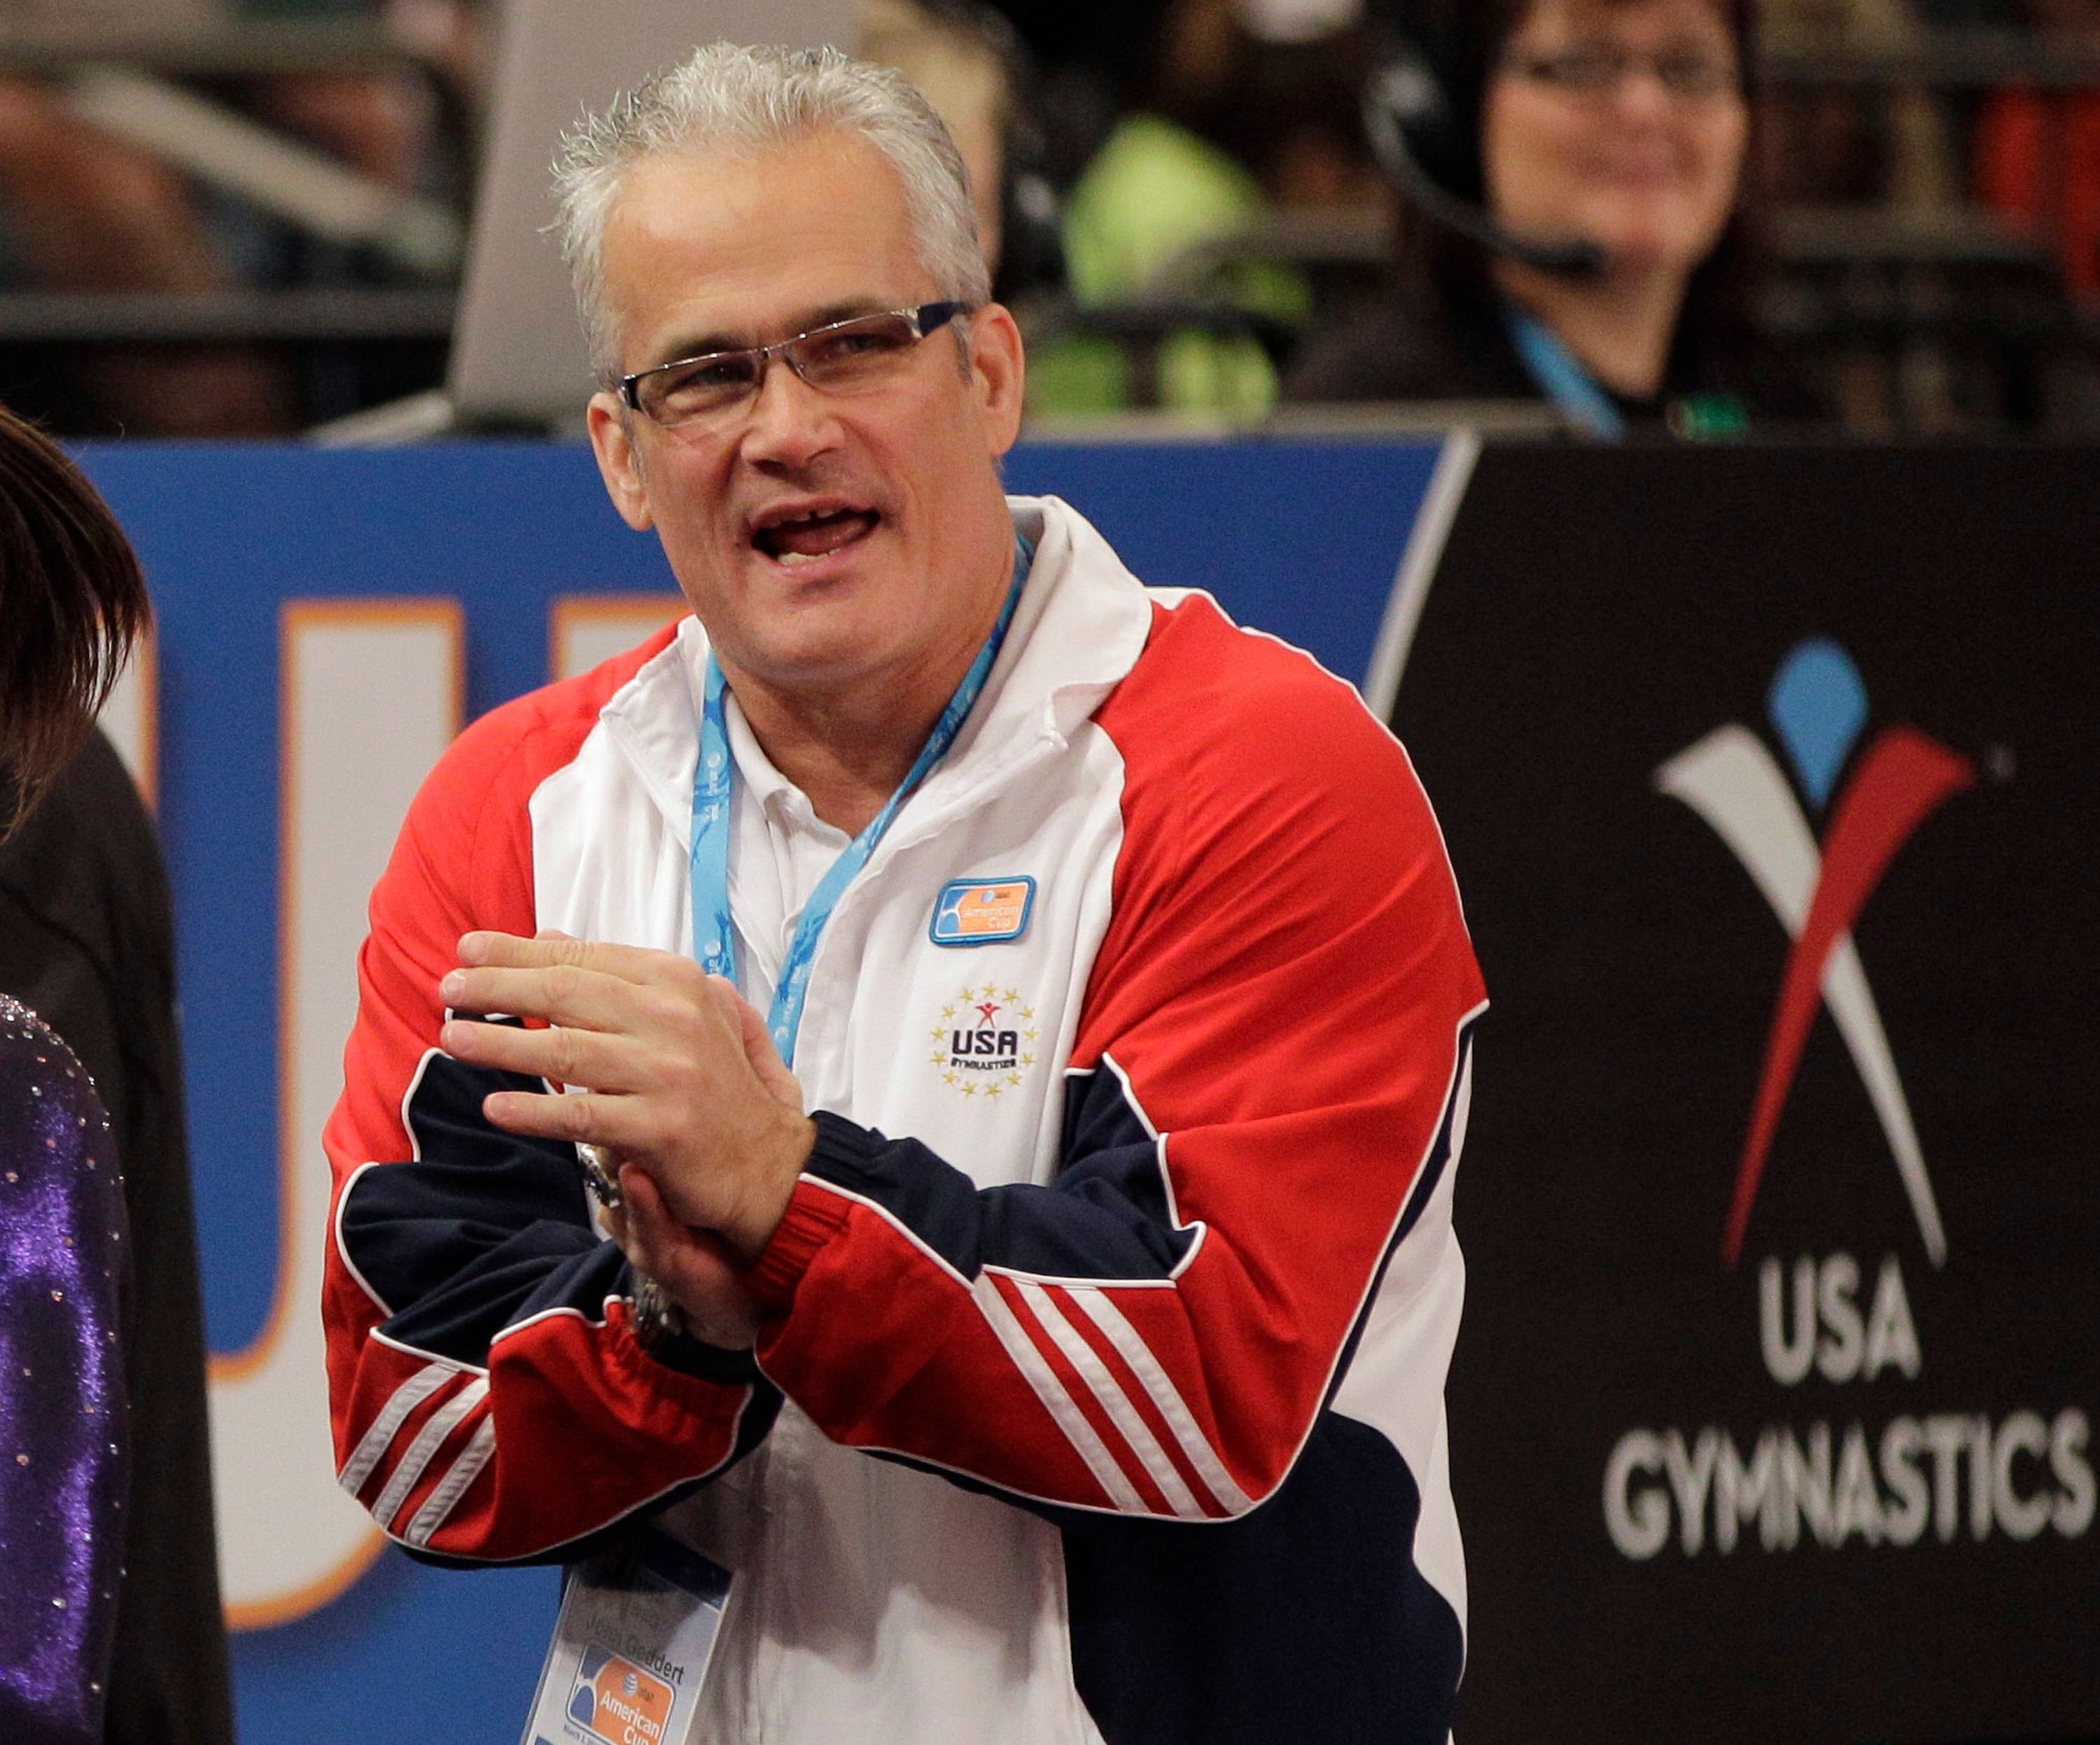 Ex-U.S. Gymnastics Coach With Ties To Dr. Larry Nassar Facing Charges